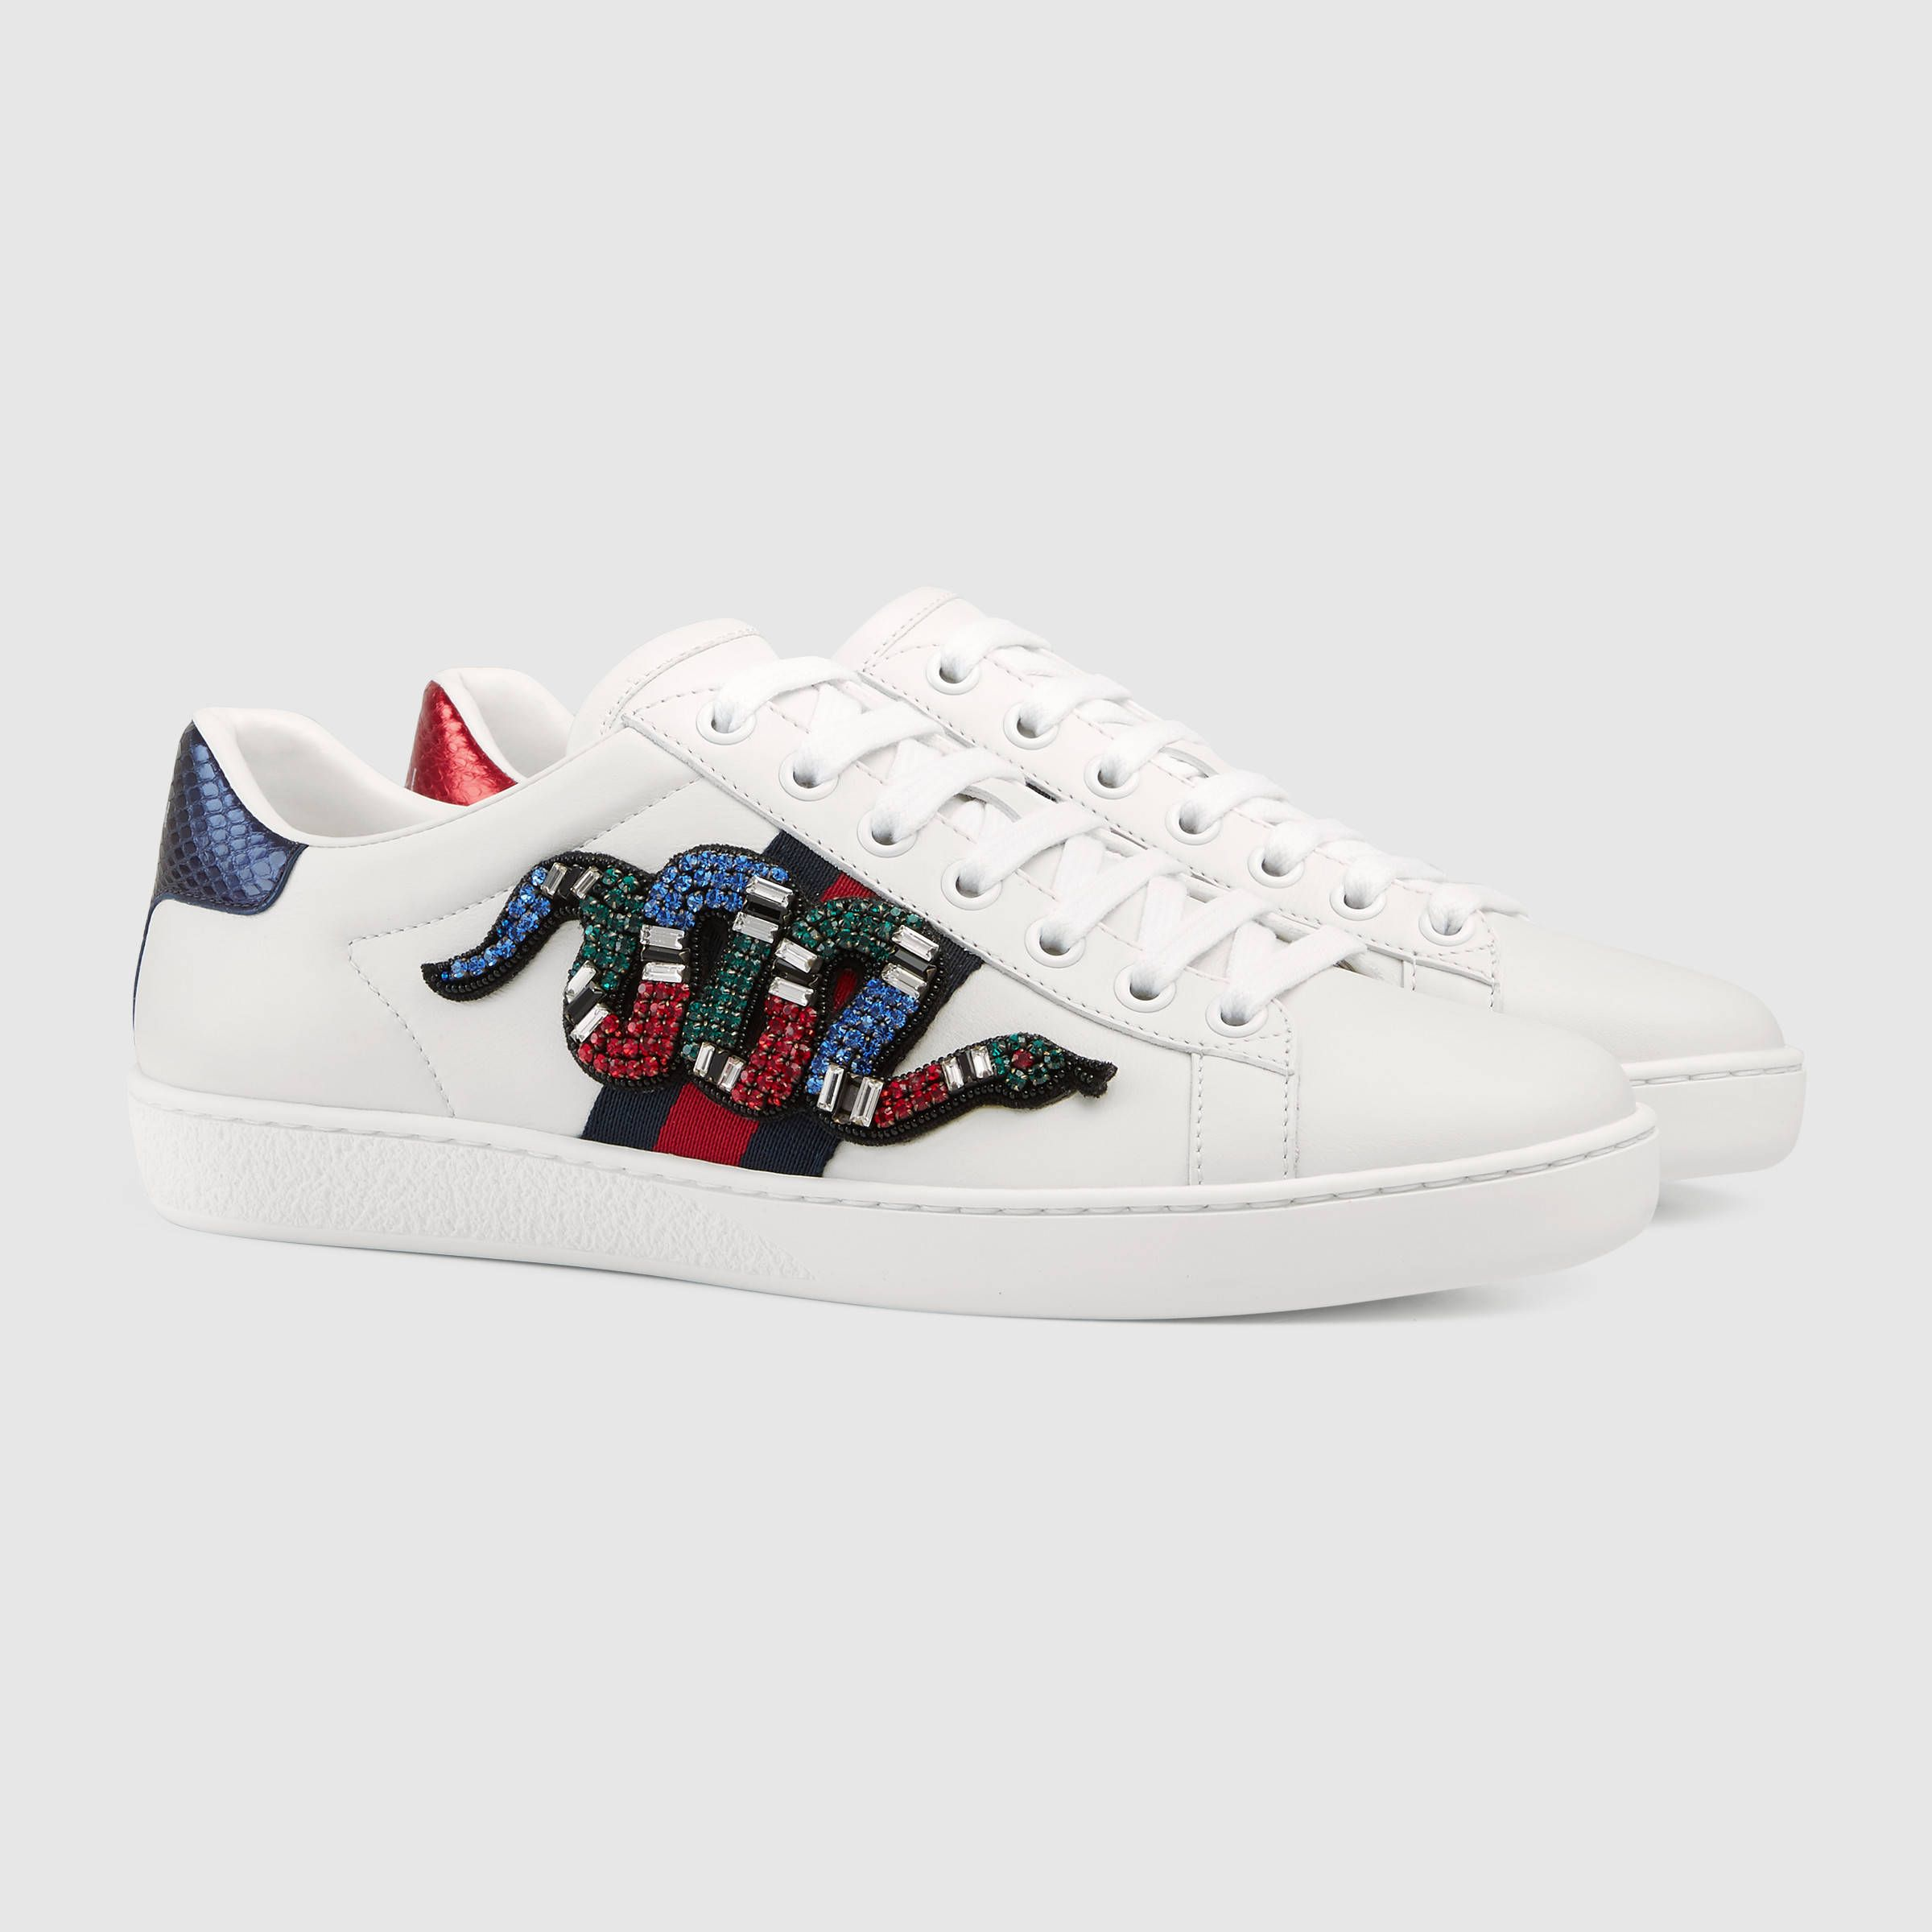 230b2e69731 Gucci New Ace Embellished Lace Up Low Top Sneakers. Designer Clothes